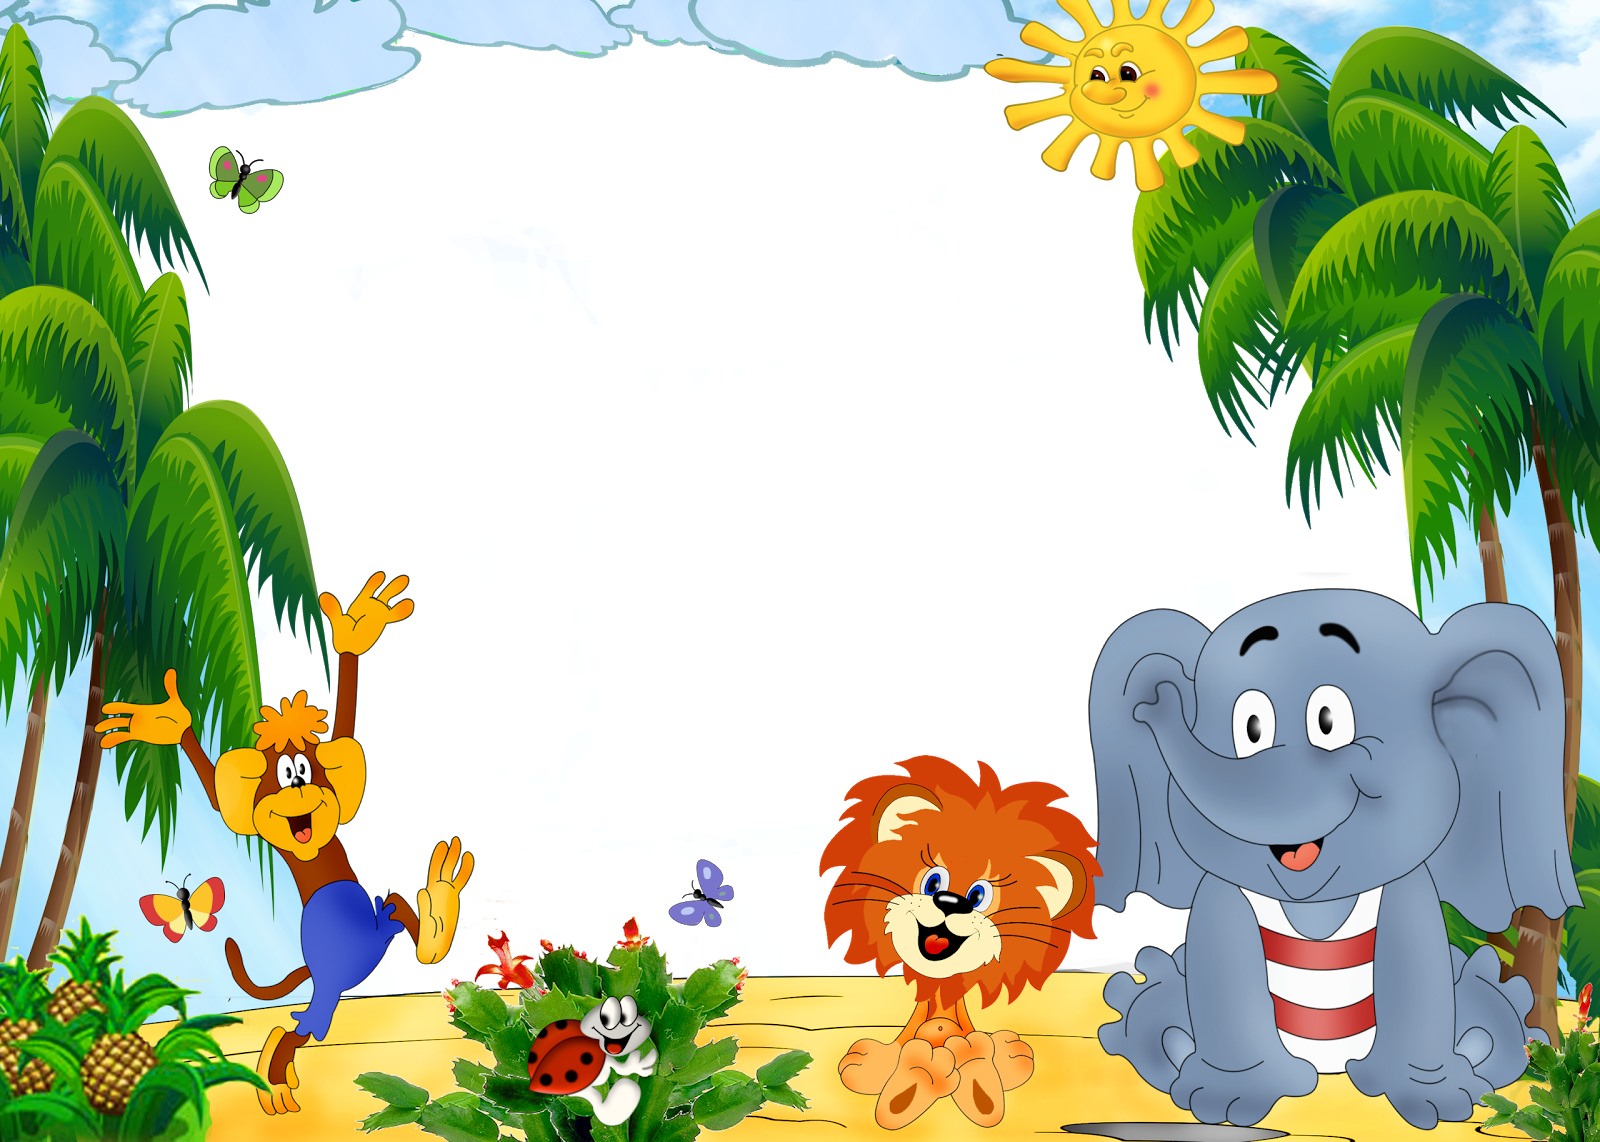 Jungle clipart nature frame. Pin by naenae nanny